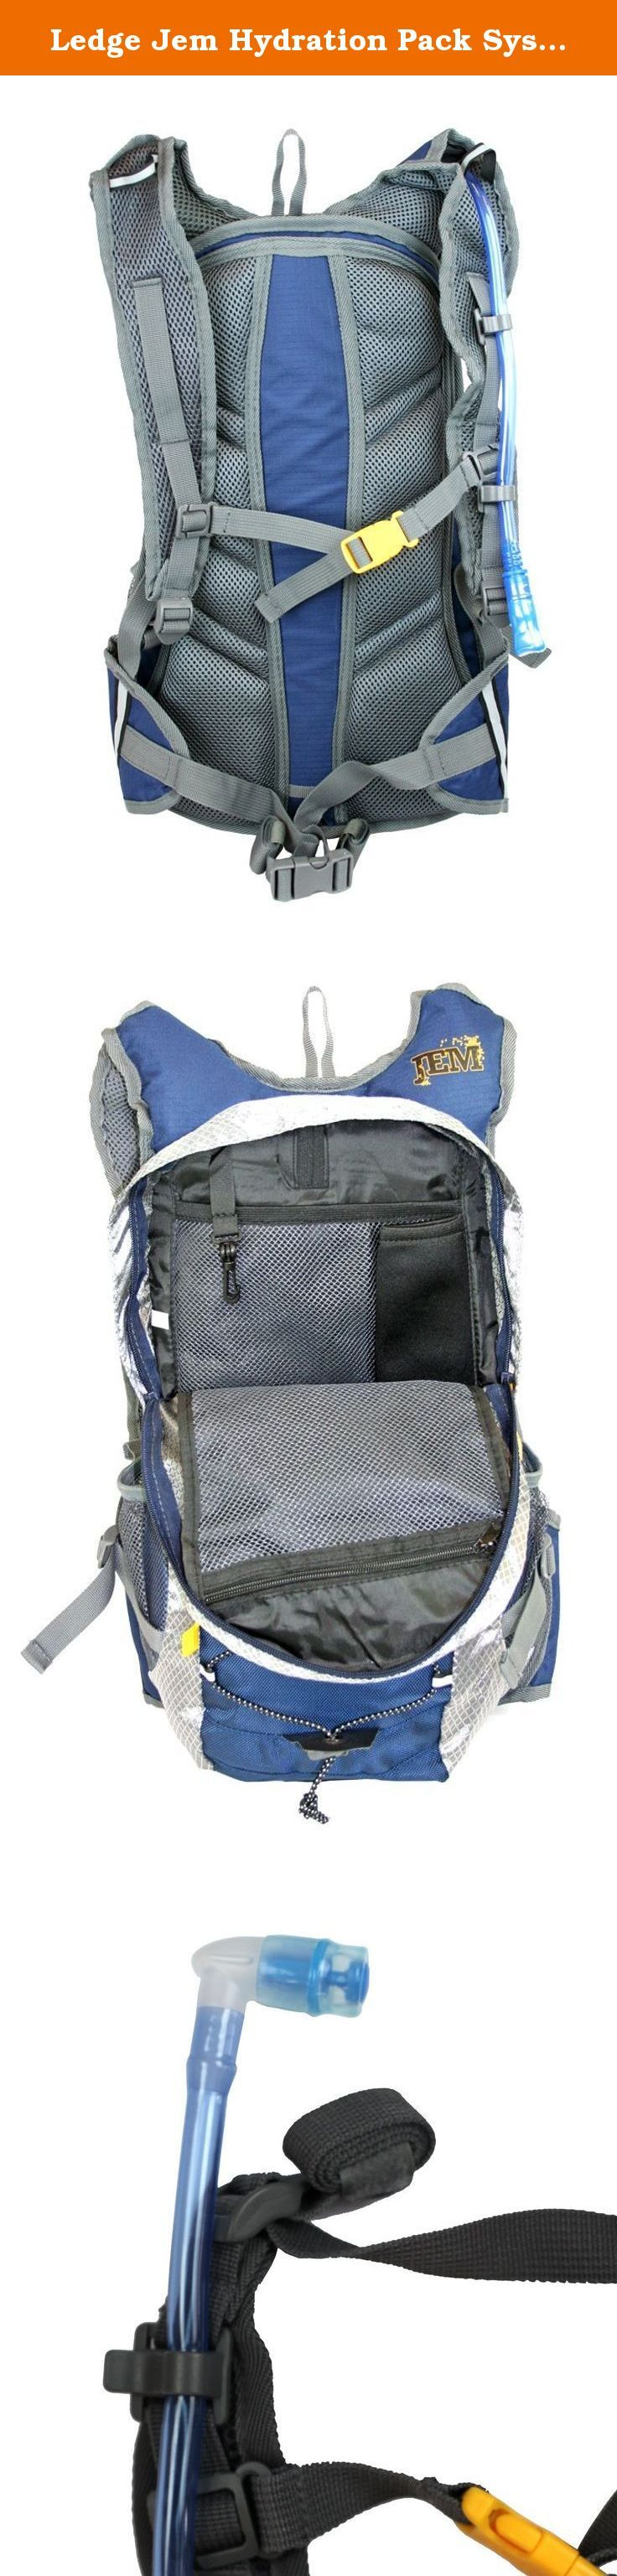 Ledge Jem Hydration Pack System (Blue). 2 Liter Hydration Pack System Bladder Volume: 68 oz (2 liter) Storage Volume: 570 cubic inches Dobby Diamond Ripstop Construction Features: full rain shield with velcro fastener * 7 organizational pockets * drip free dual action bite valve * adjustable waist and sternum strap * 2 supplemental bottle compartments * neoprene phone/mp3 holder * interior key clip * earphone access * reflective taping * bungee cargo holder * padded ventilated back panel…